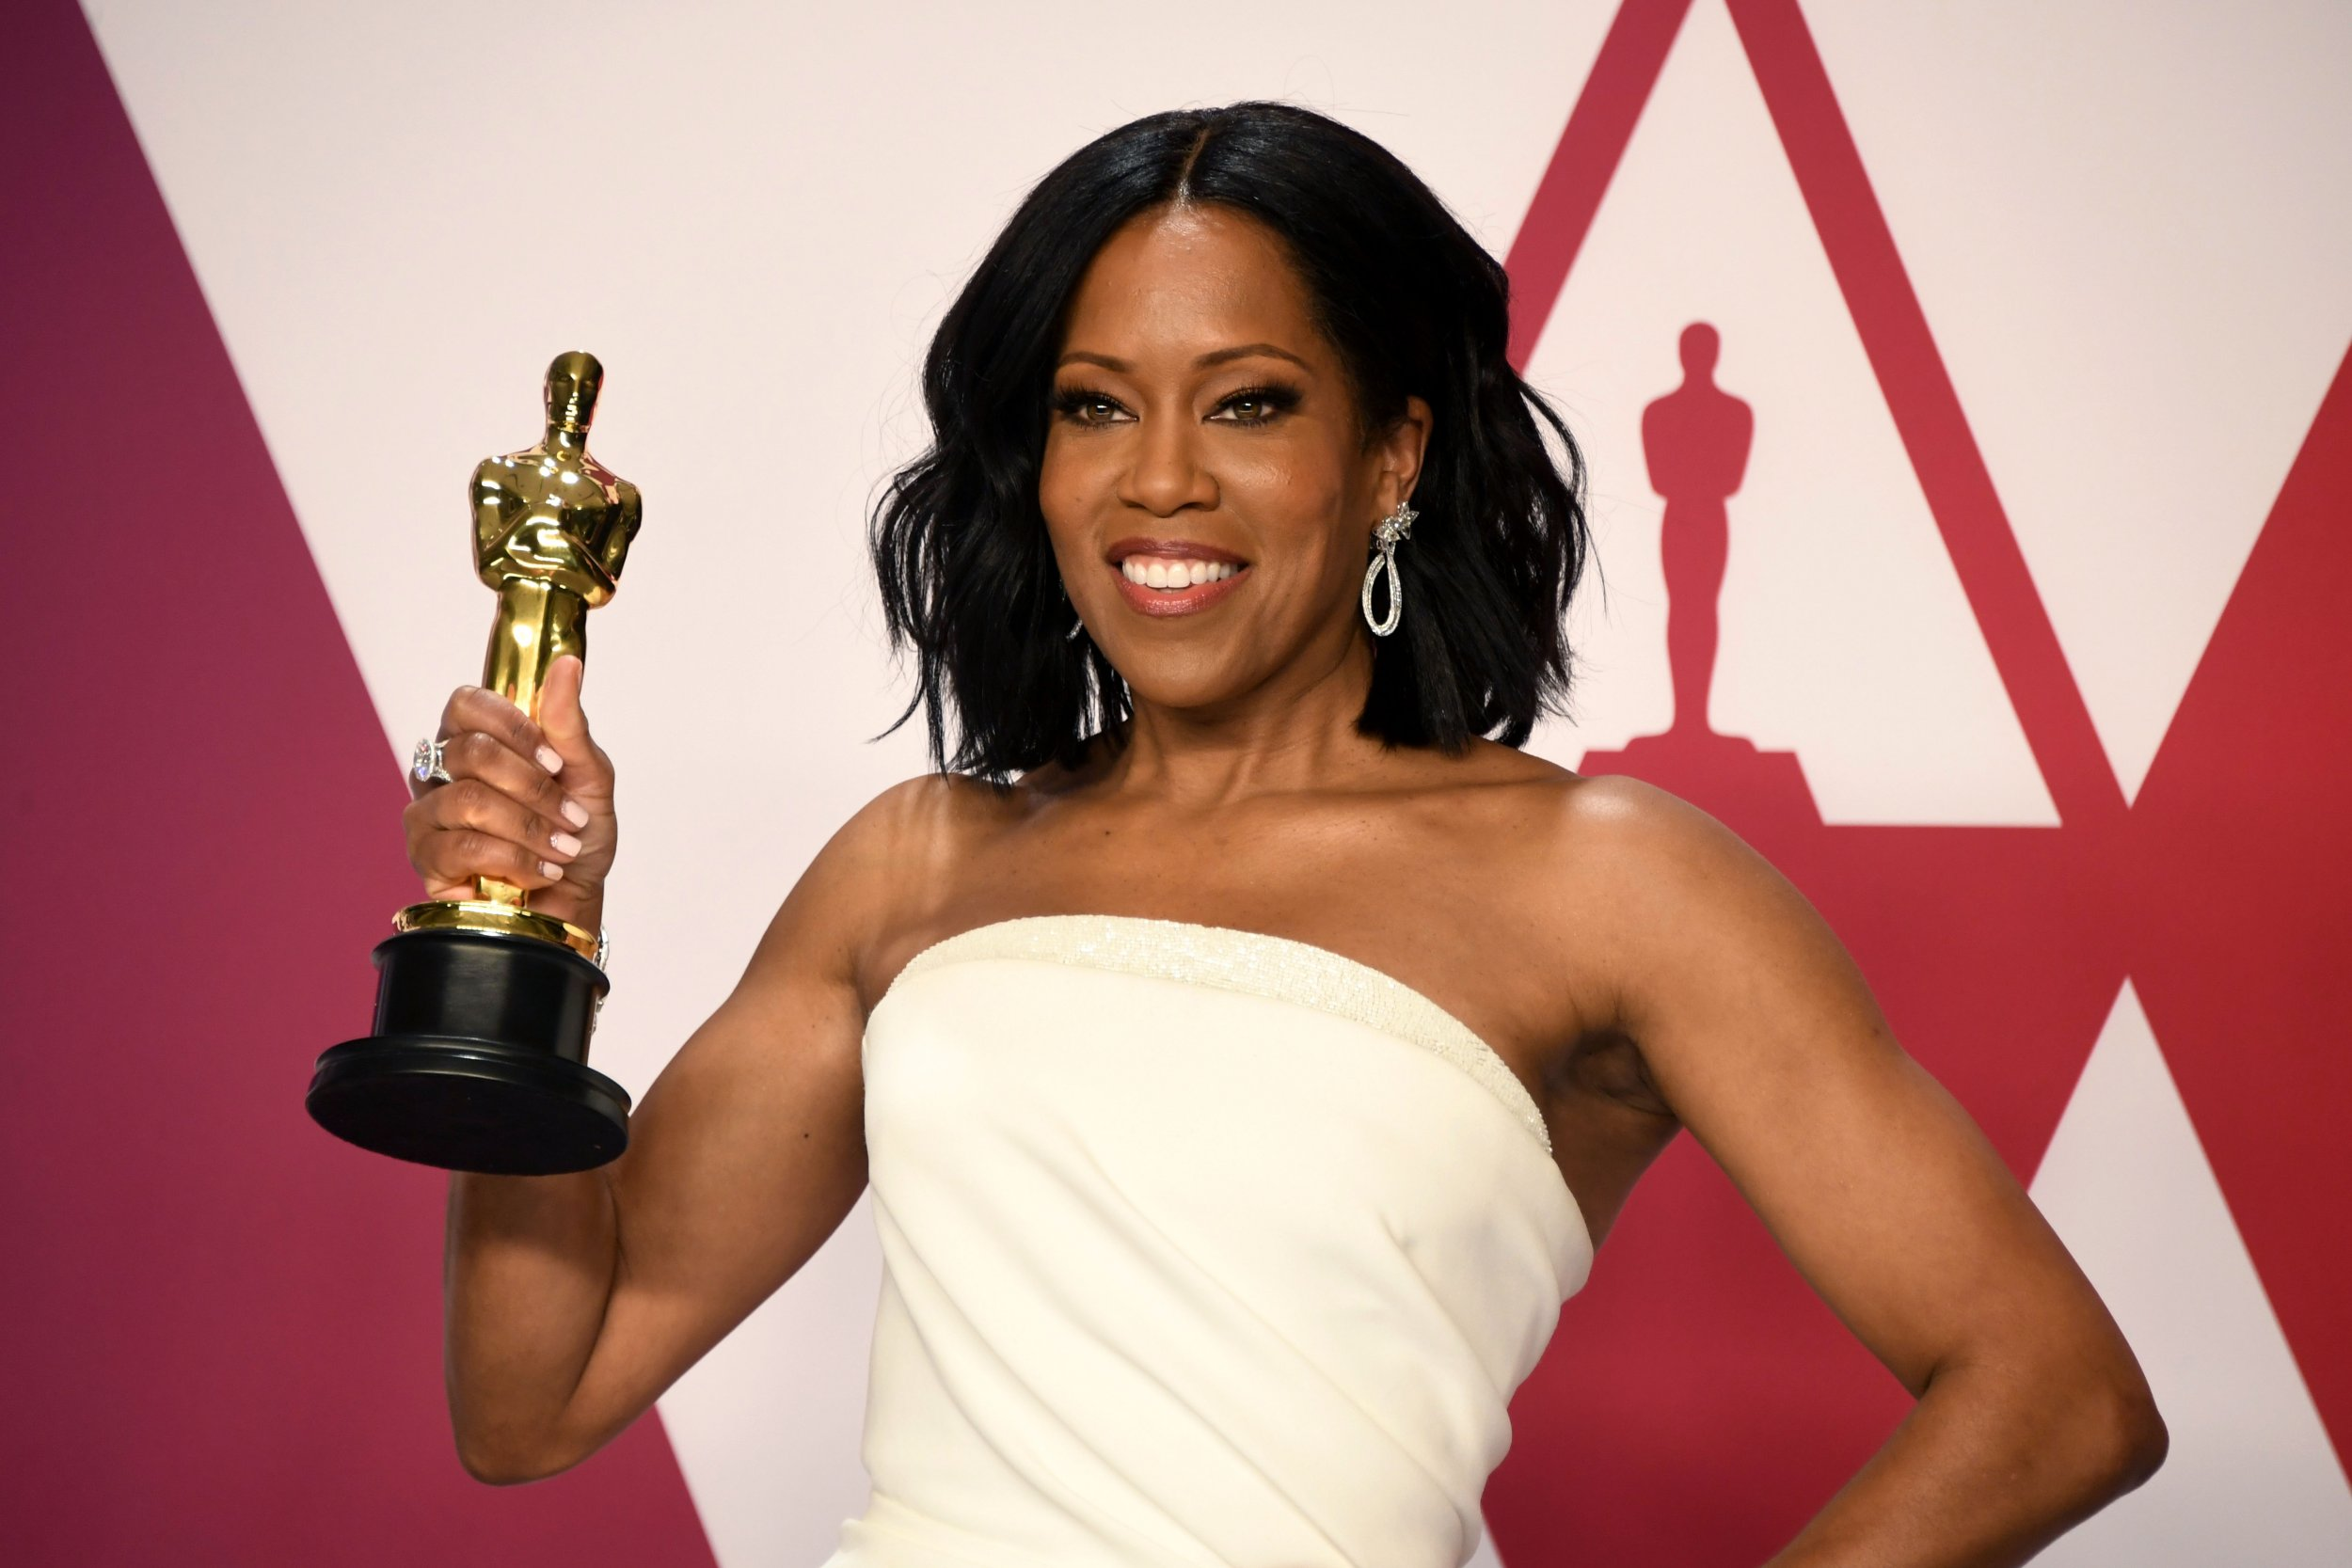 Regina King Says The Academy's Becoming More 'Reflective' After First Oscar Win